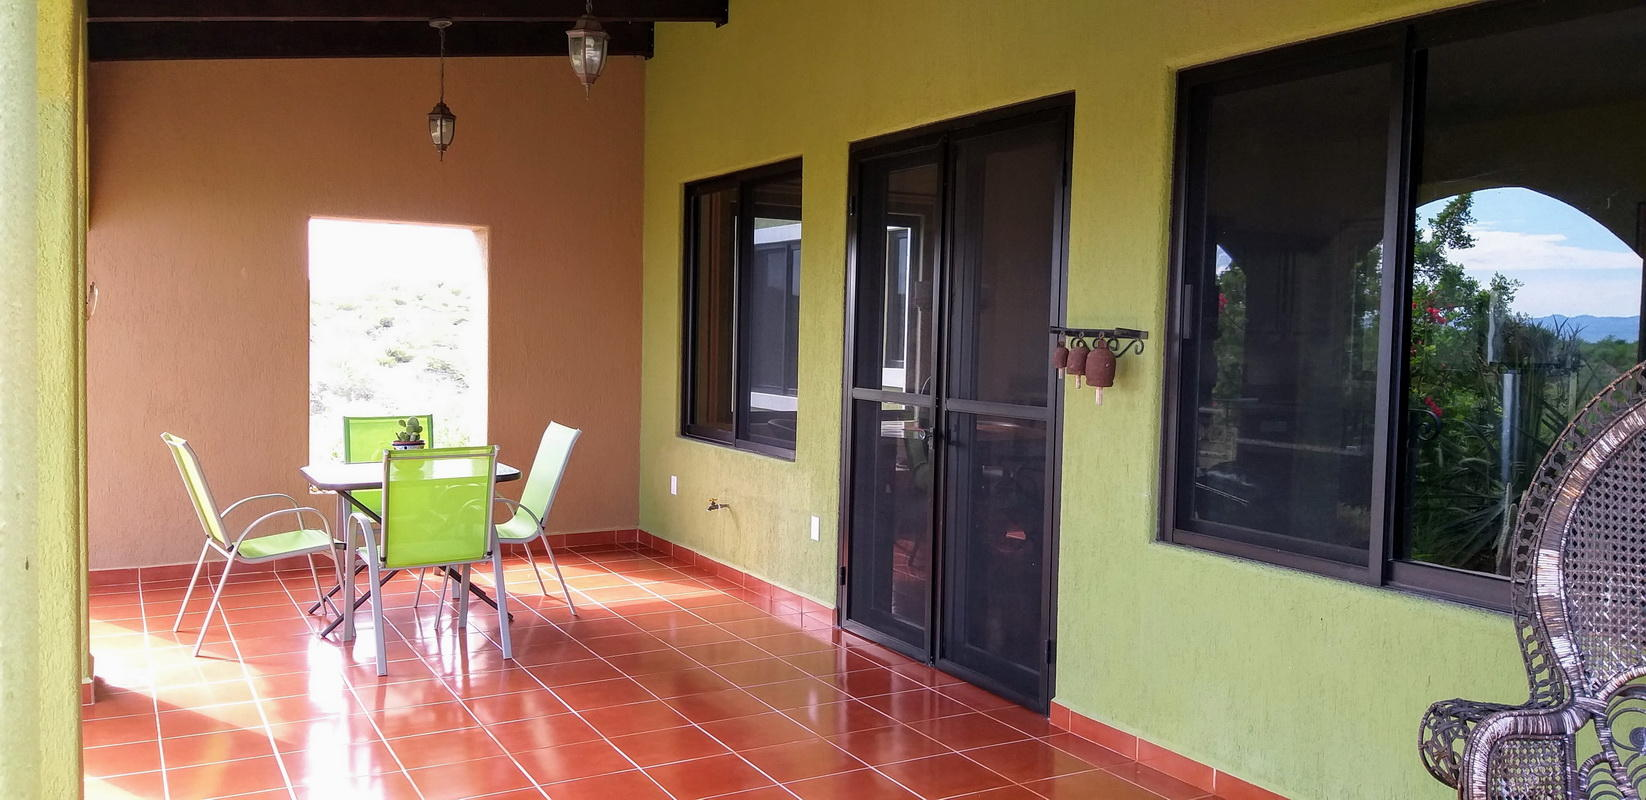 La Paz, 3 Bedrooms Bedrooms, ,3 BathroomsBathrooms,House,For Sale,Calle Vista Mar,19-3275